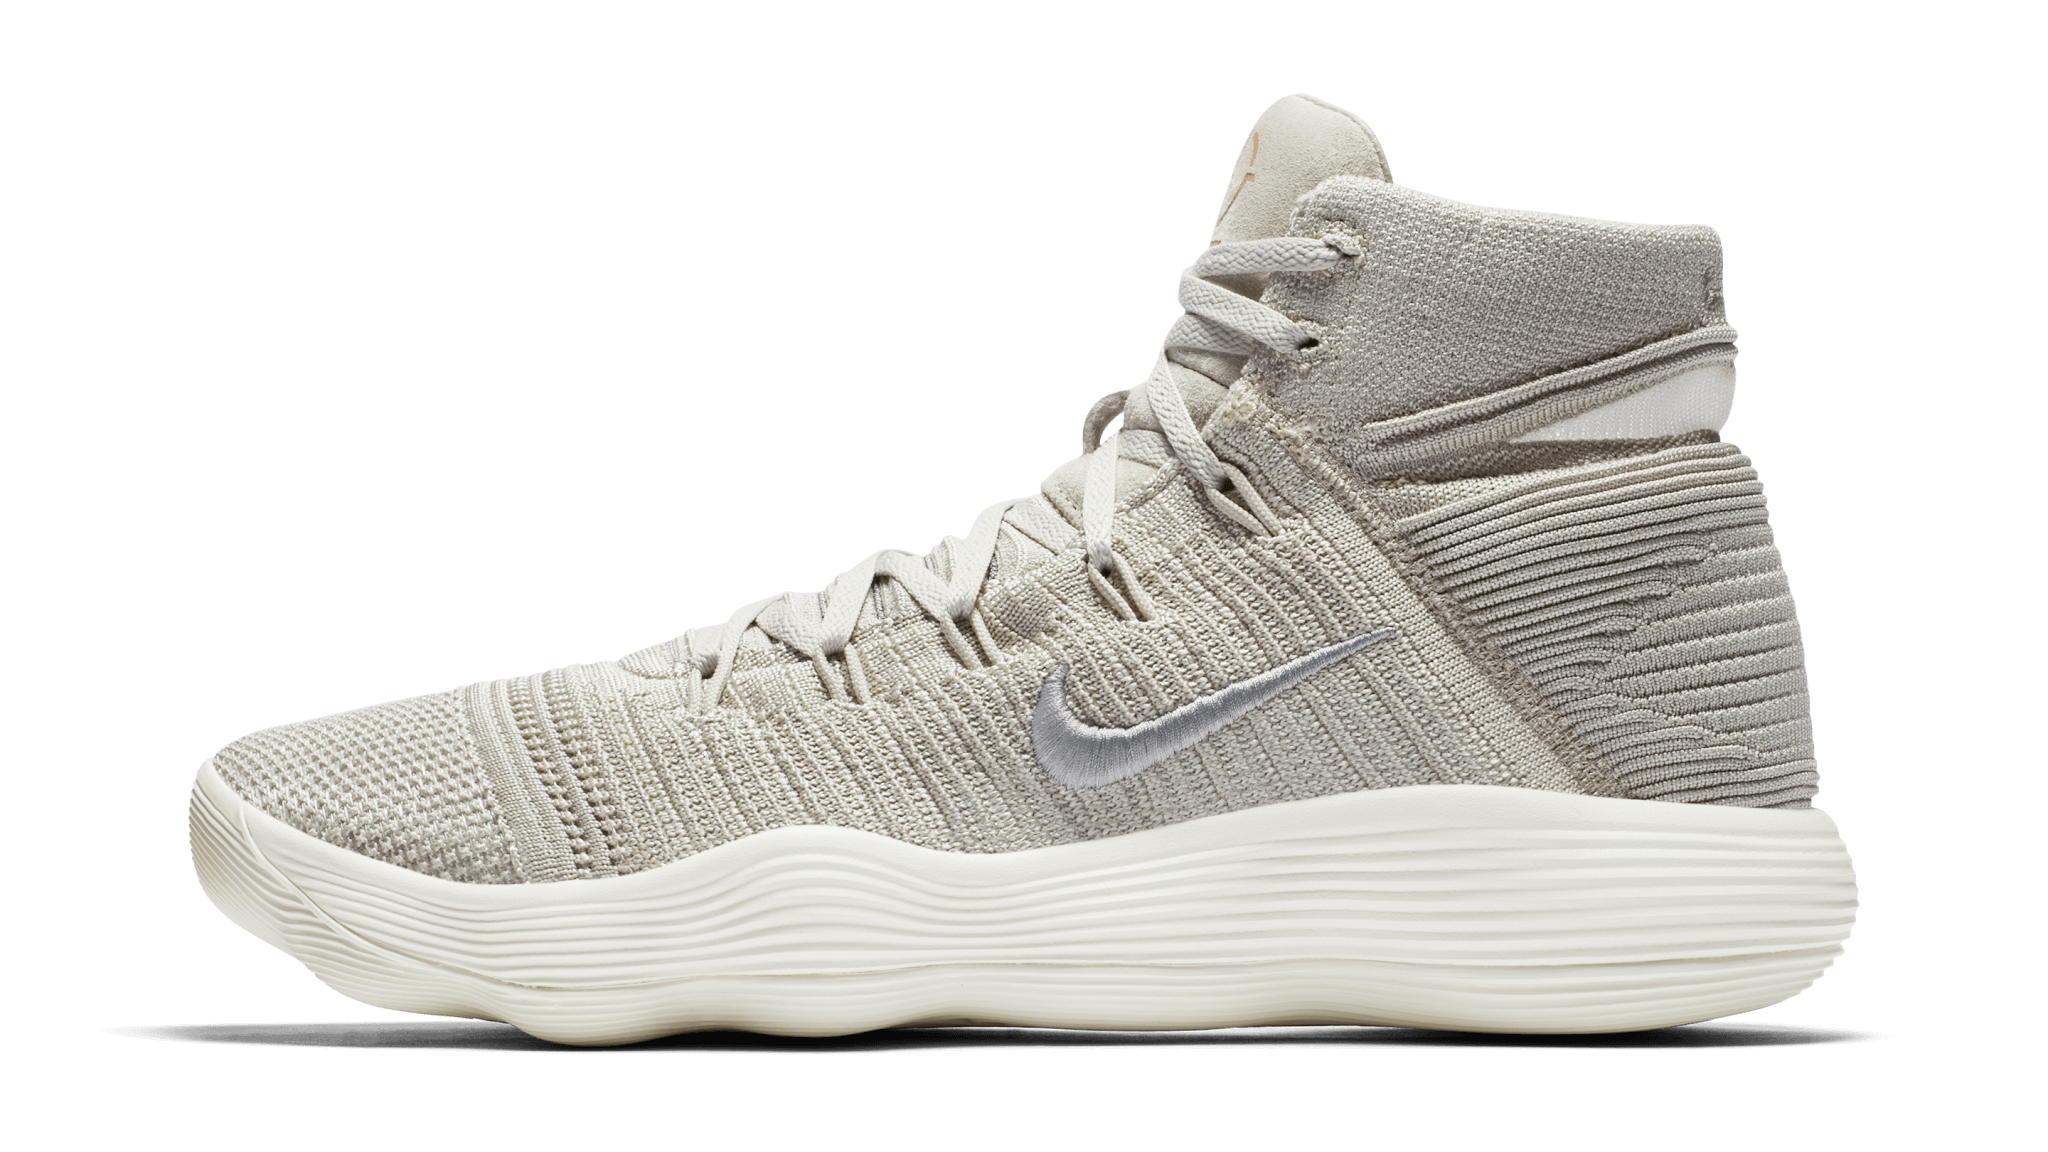 79d84e93d71 Nike Hyperdunk Flyknit 2017 Performance Review